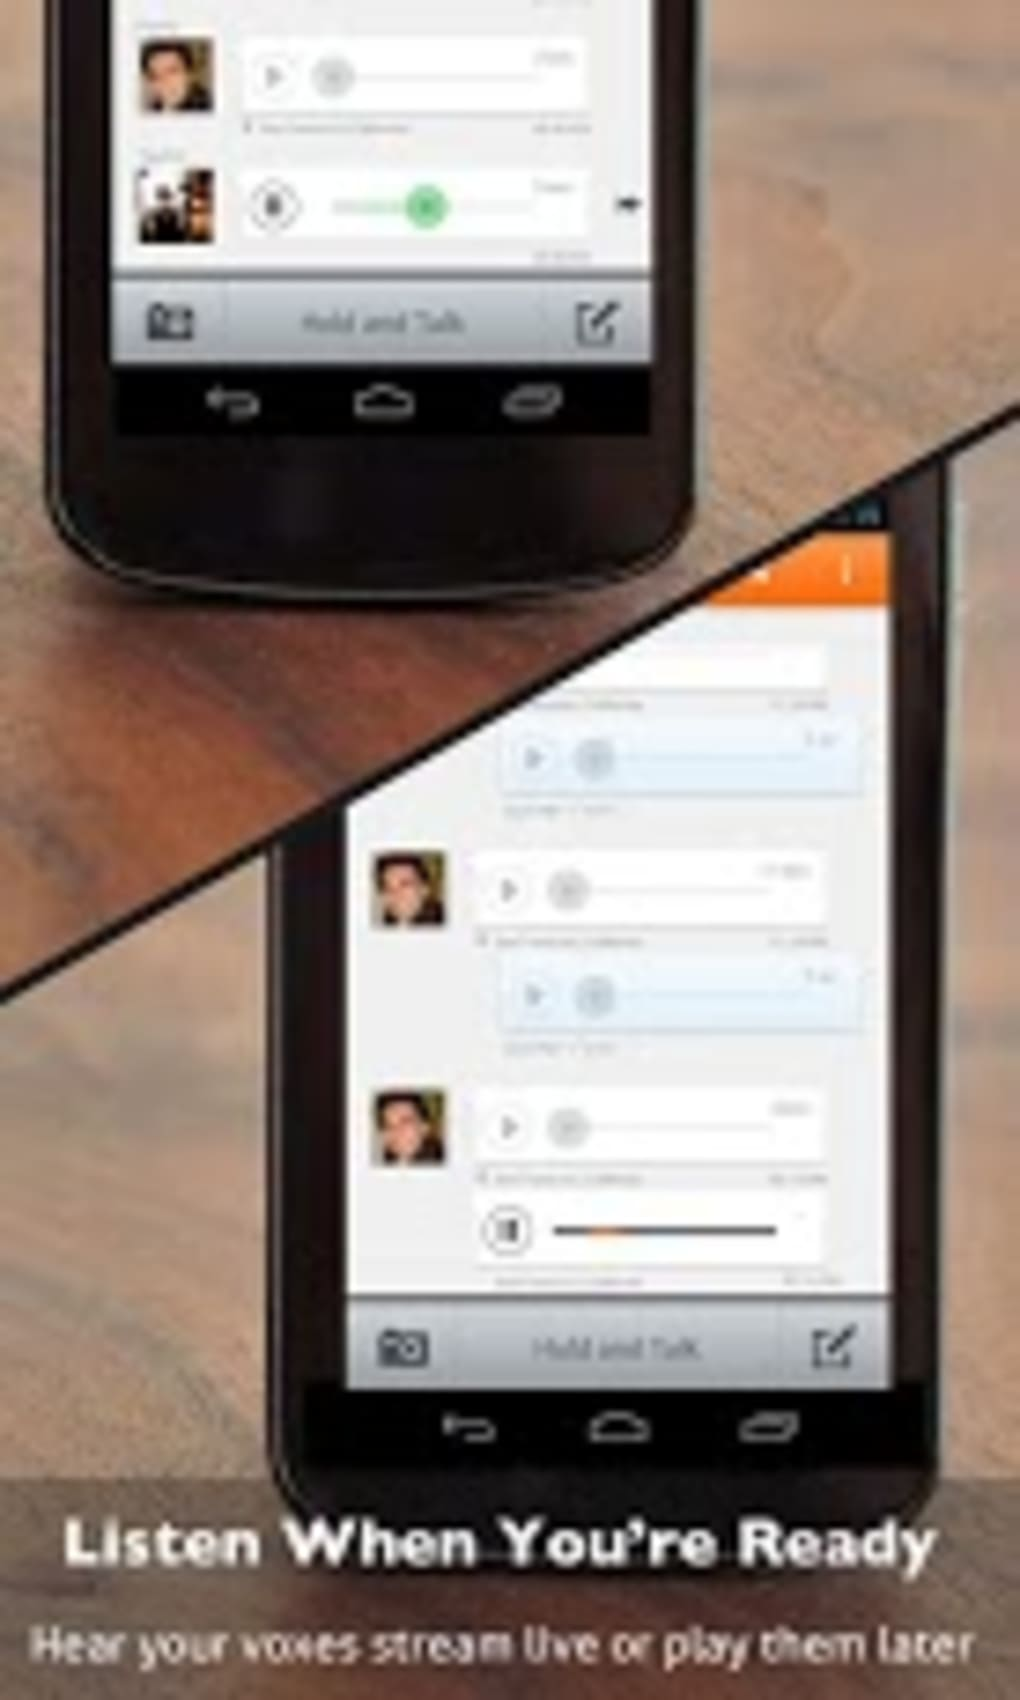 The best walkie-talkie apps for Android and iOS